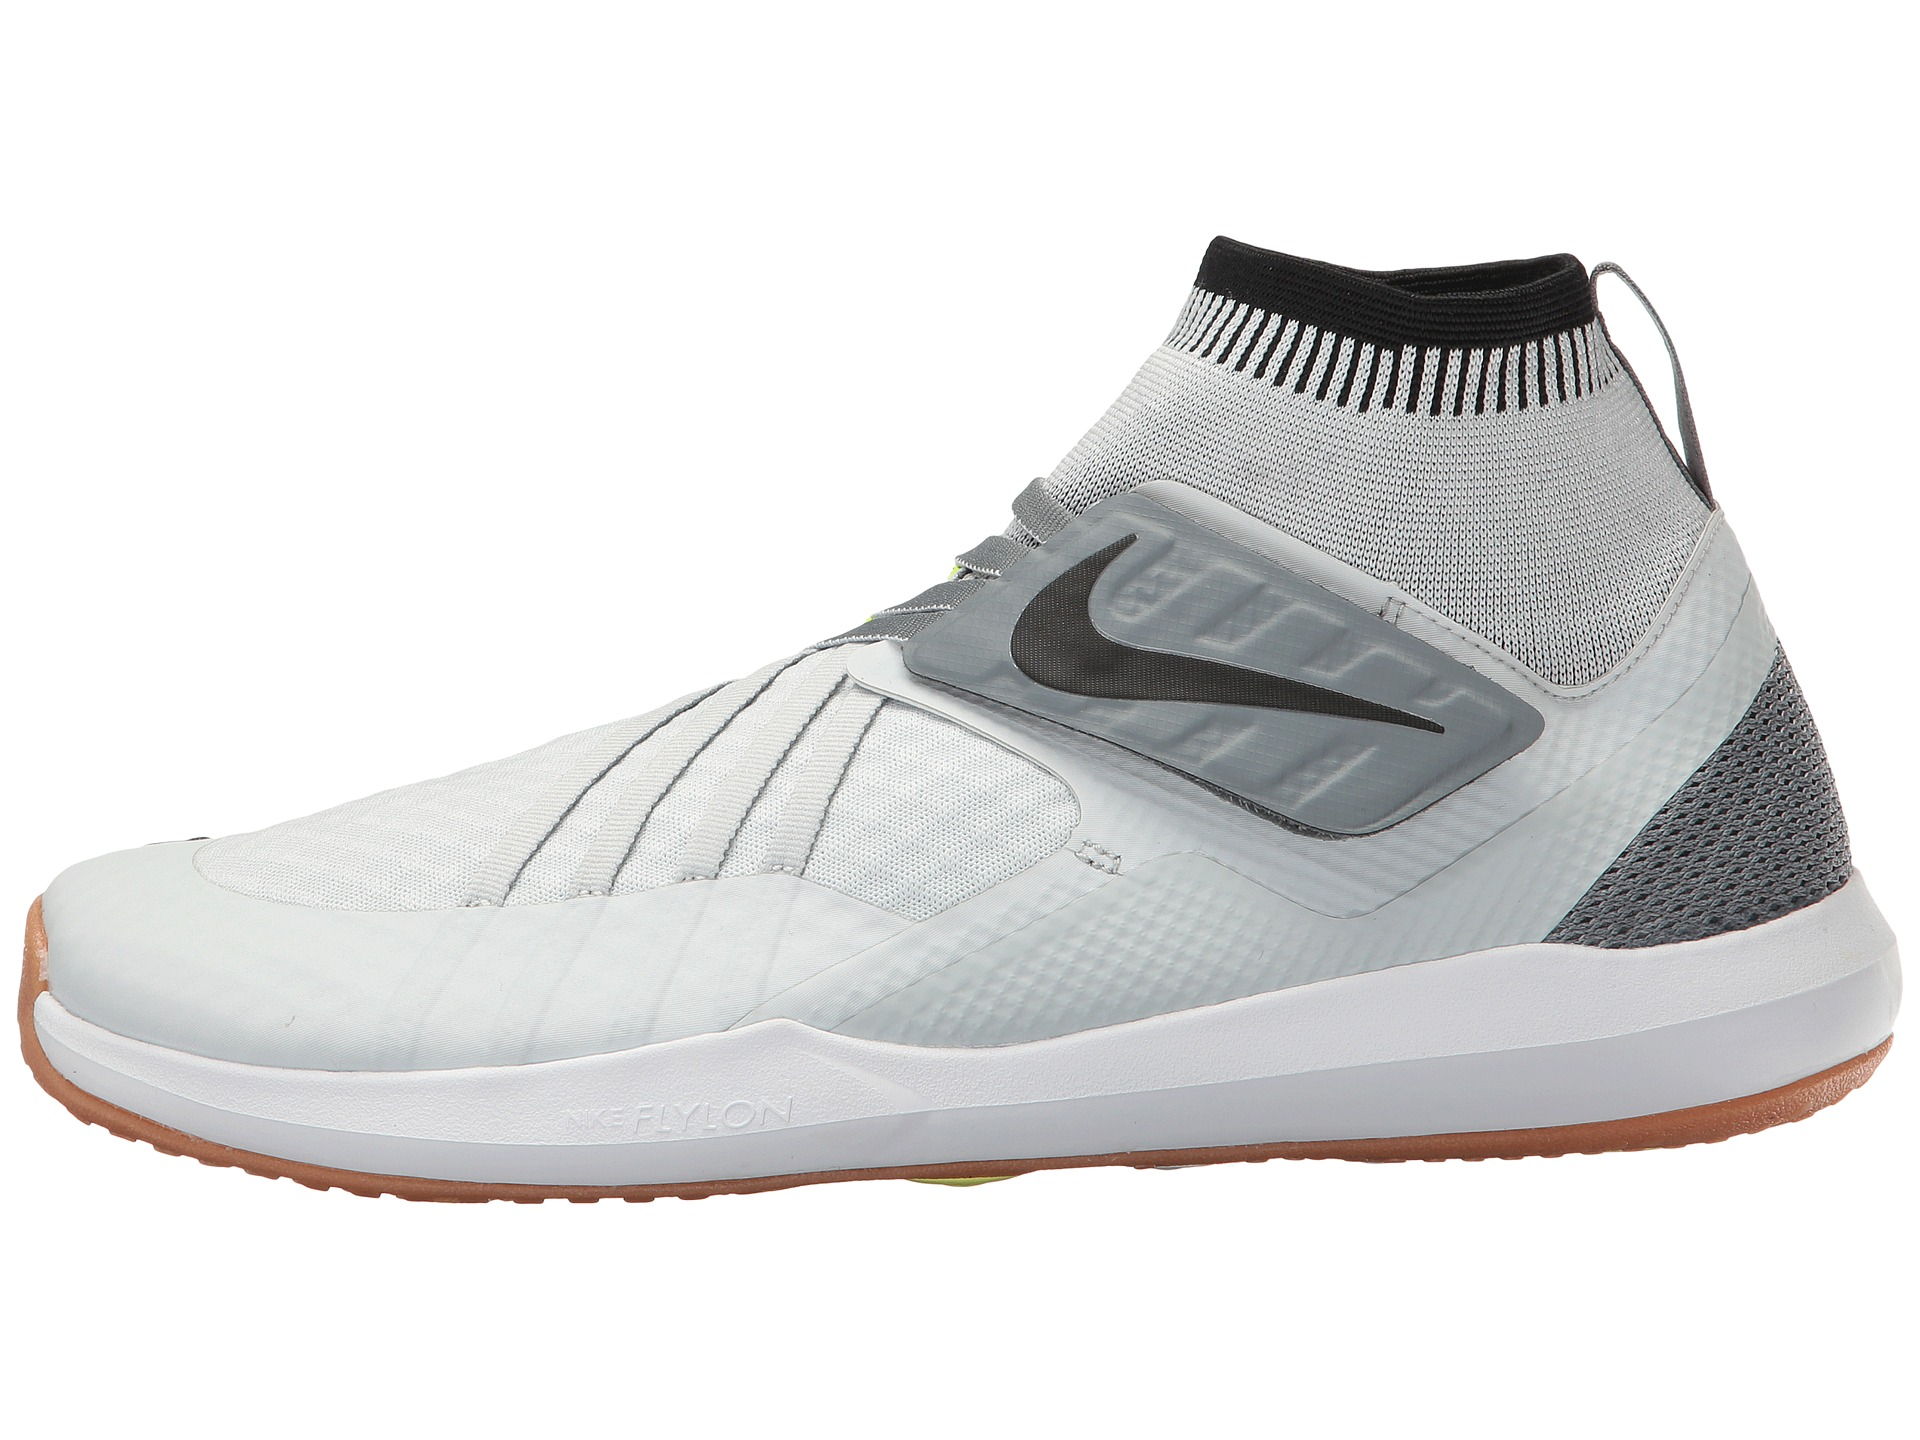 nike s crm Nike flex adapt tr is the world's #47 best nike training shoe (37 ratings + 1  experts) see today's best deals  nike flex adapt tr blau (hypr vlt / pch crm- brght grp-ttl nike flex adapt tr  26% most popular most popular training  shoes.